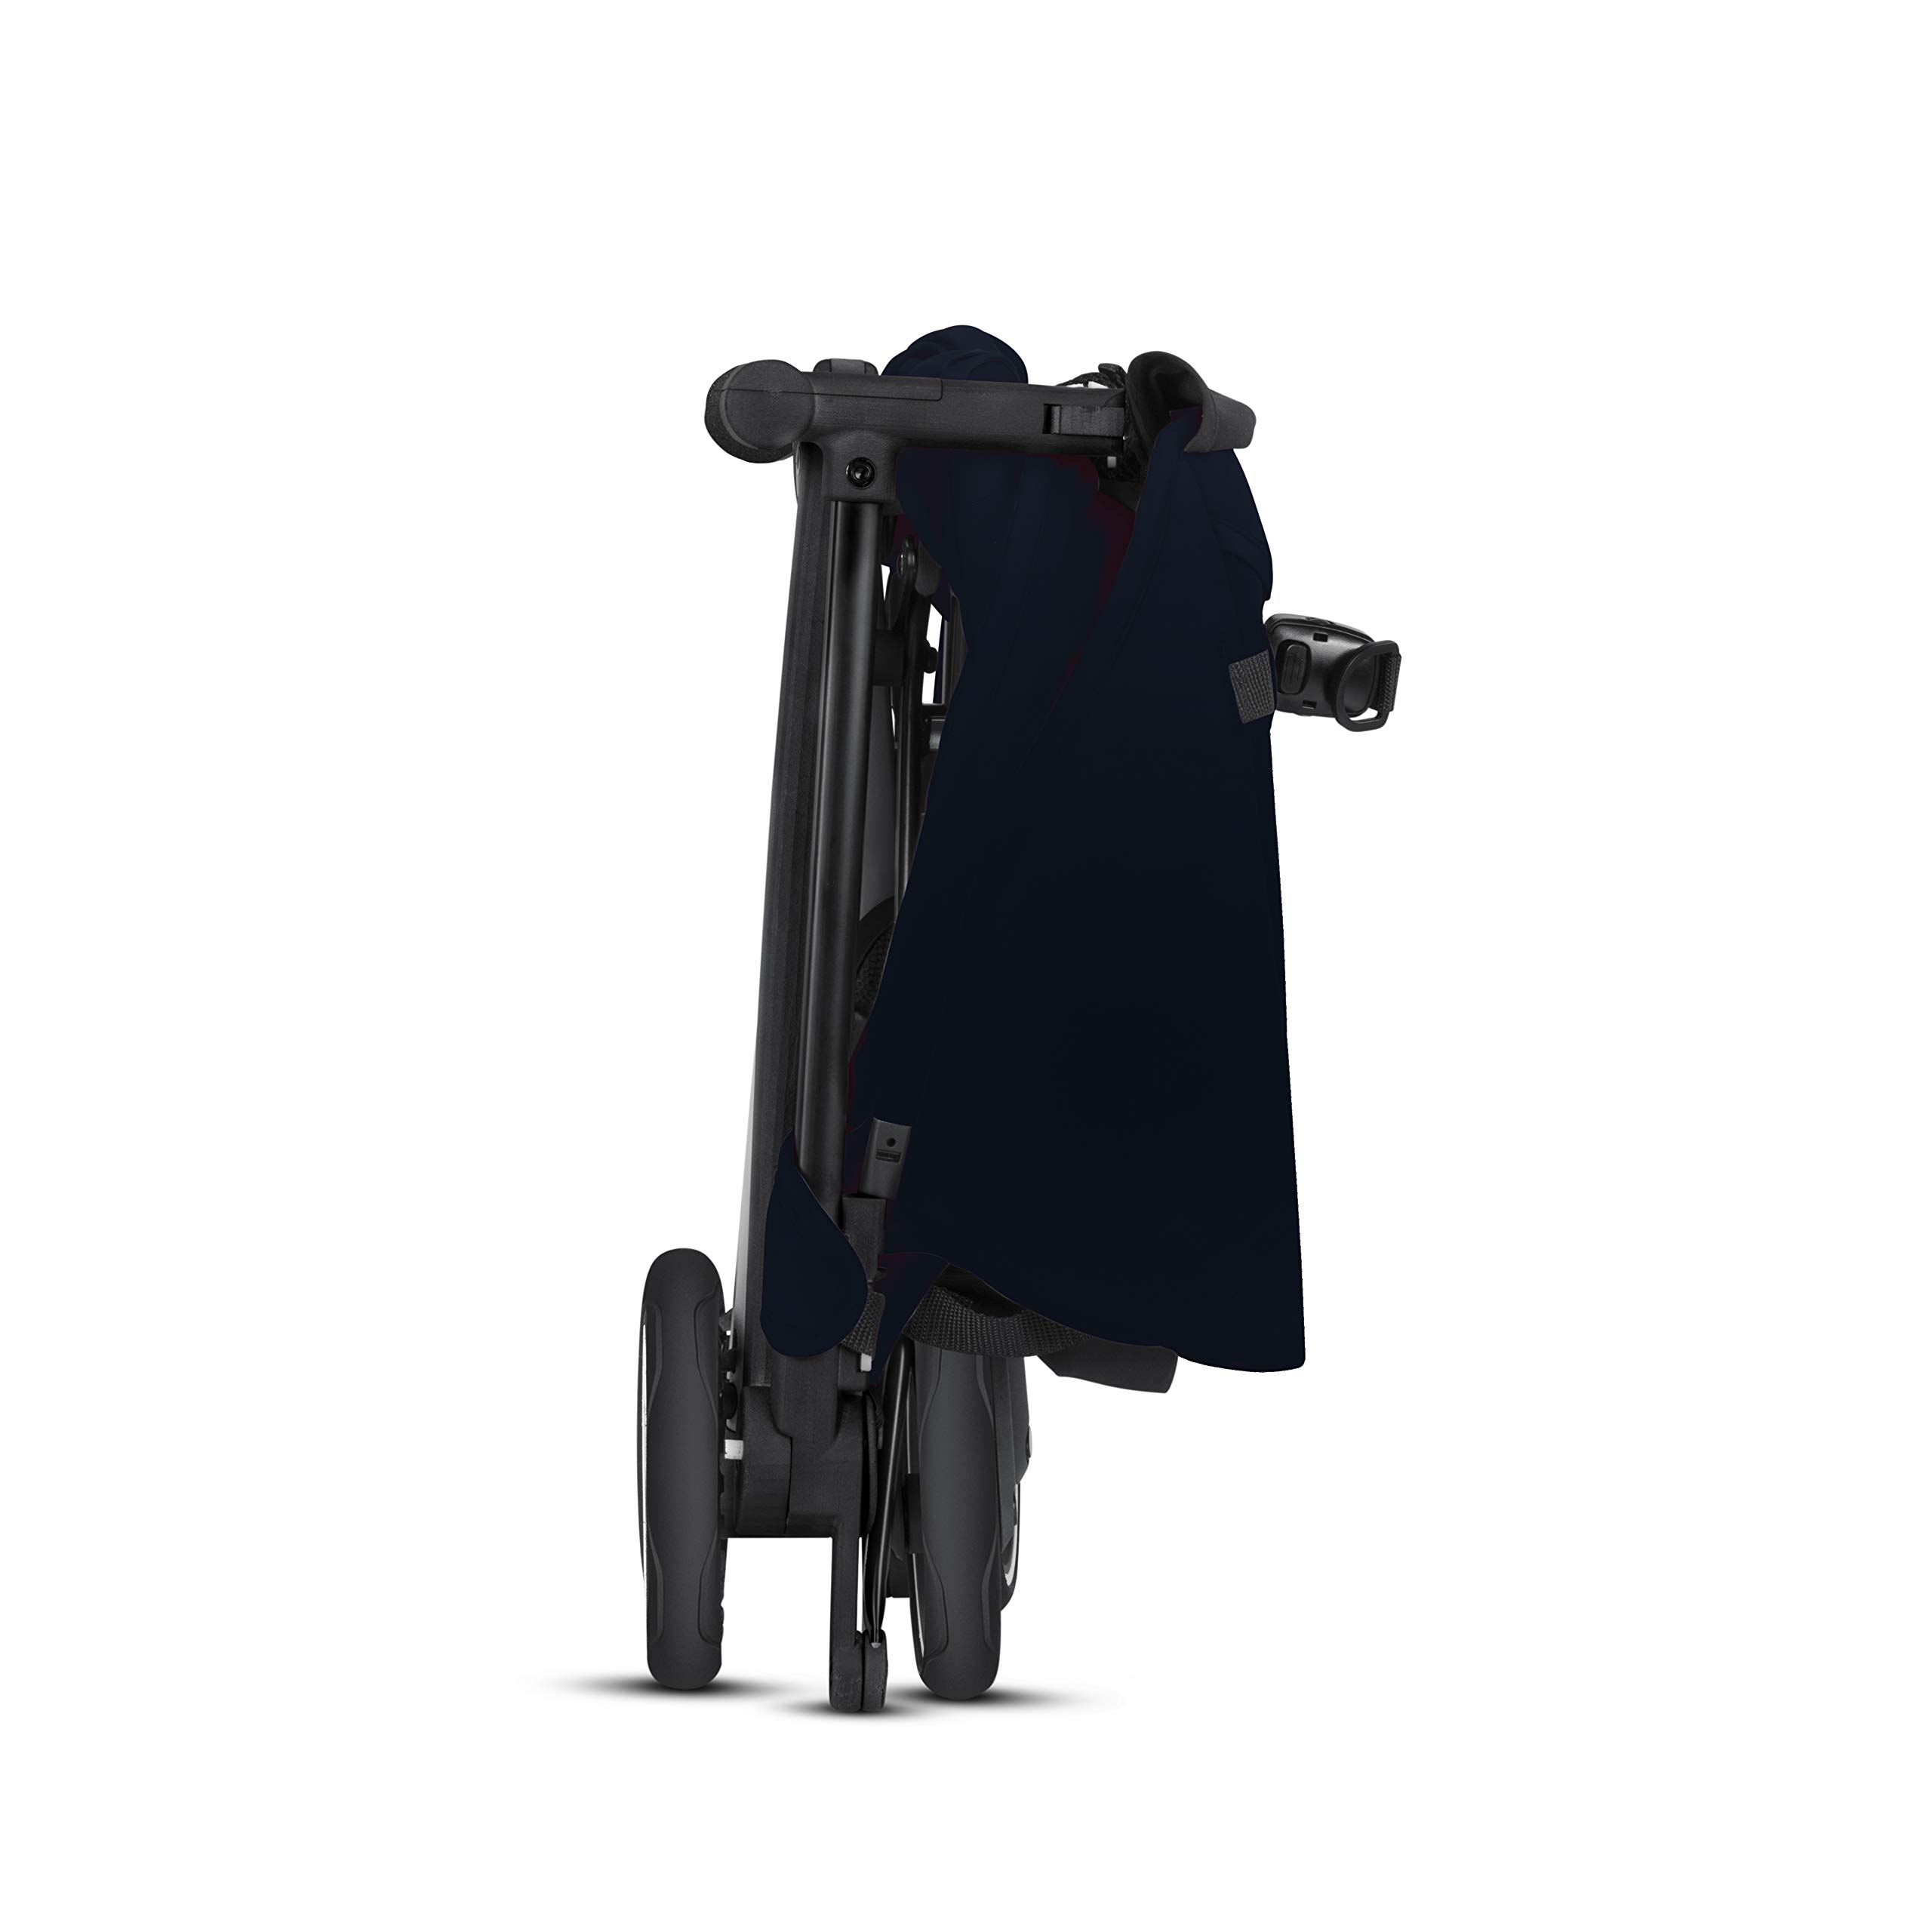 GB Pockit+ All-City Stroller - Velvet Black